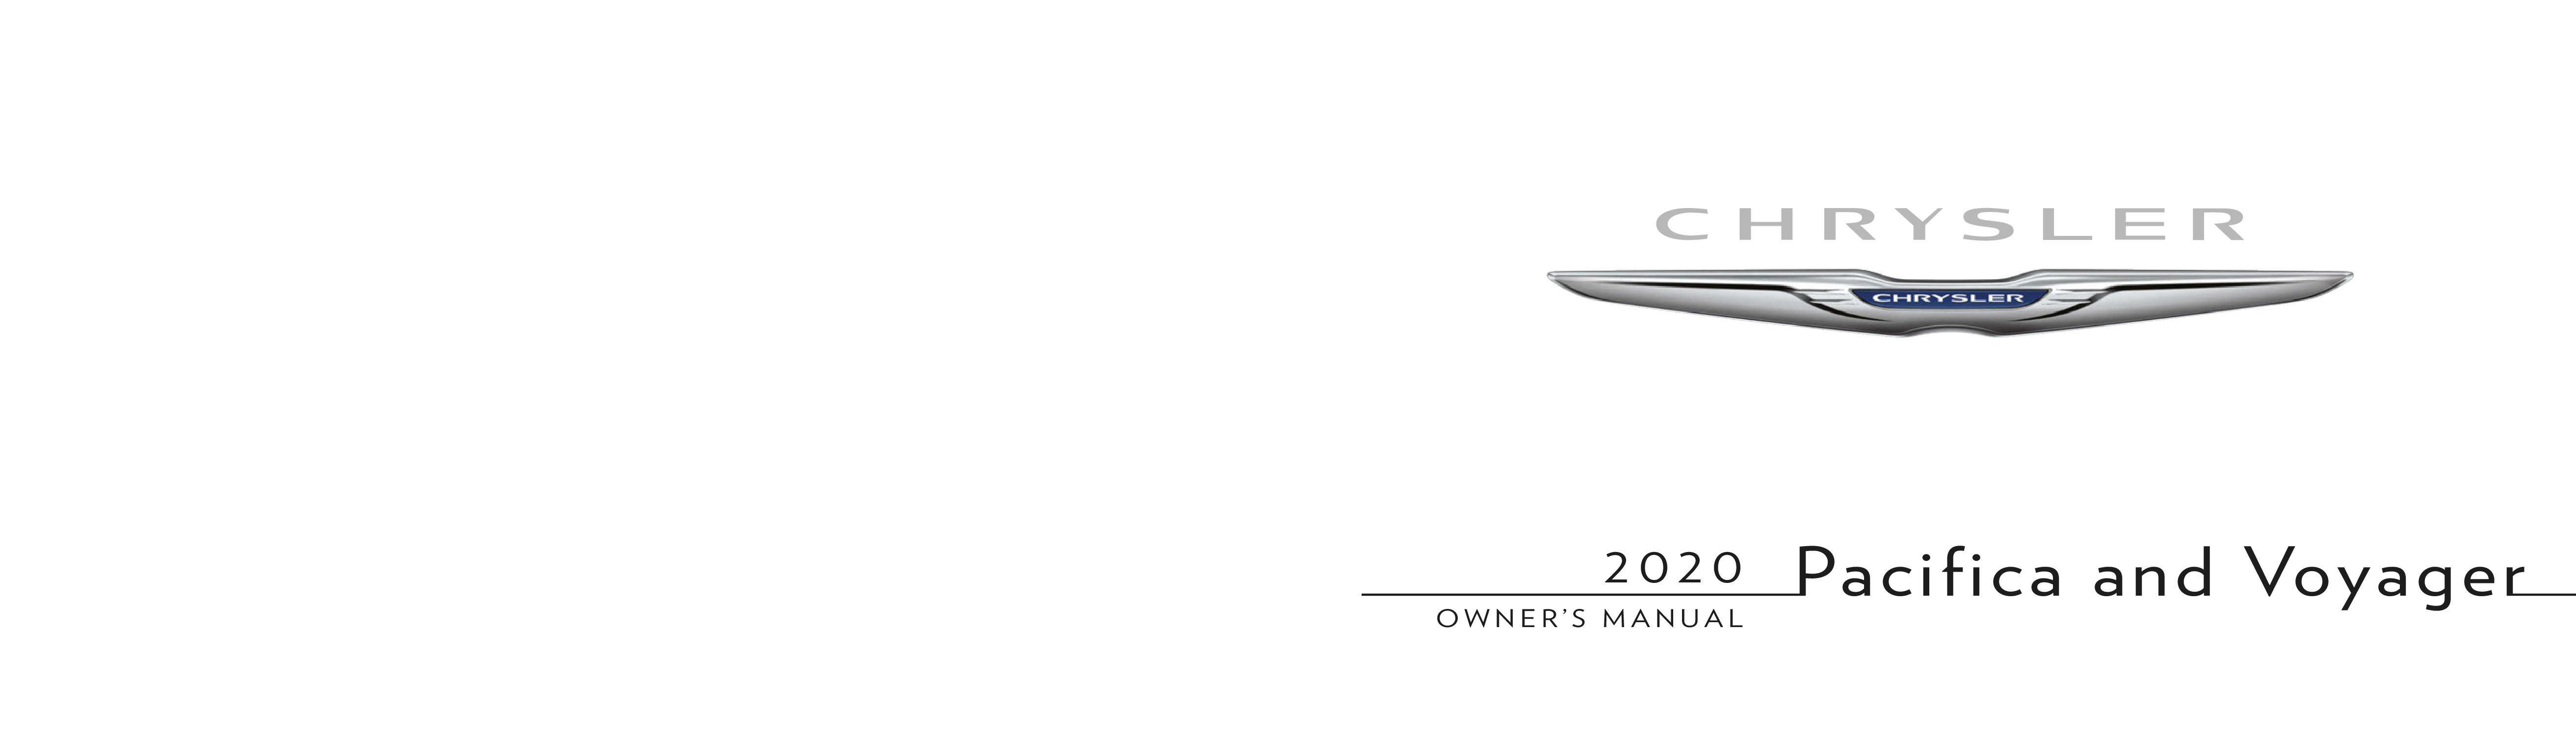 2020 Chrysler Pacifica owners manual